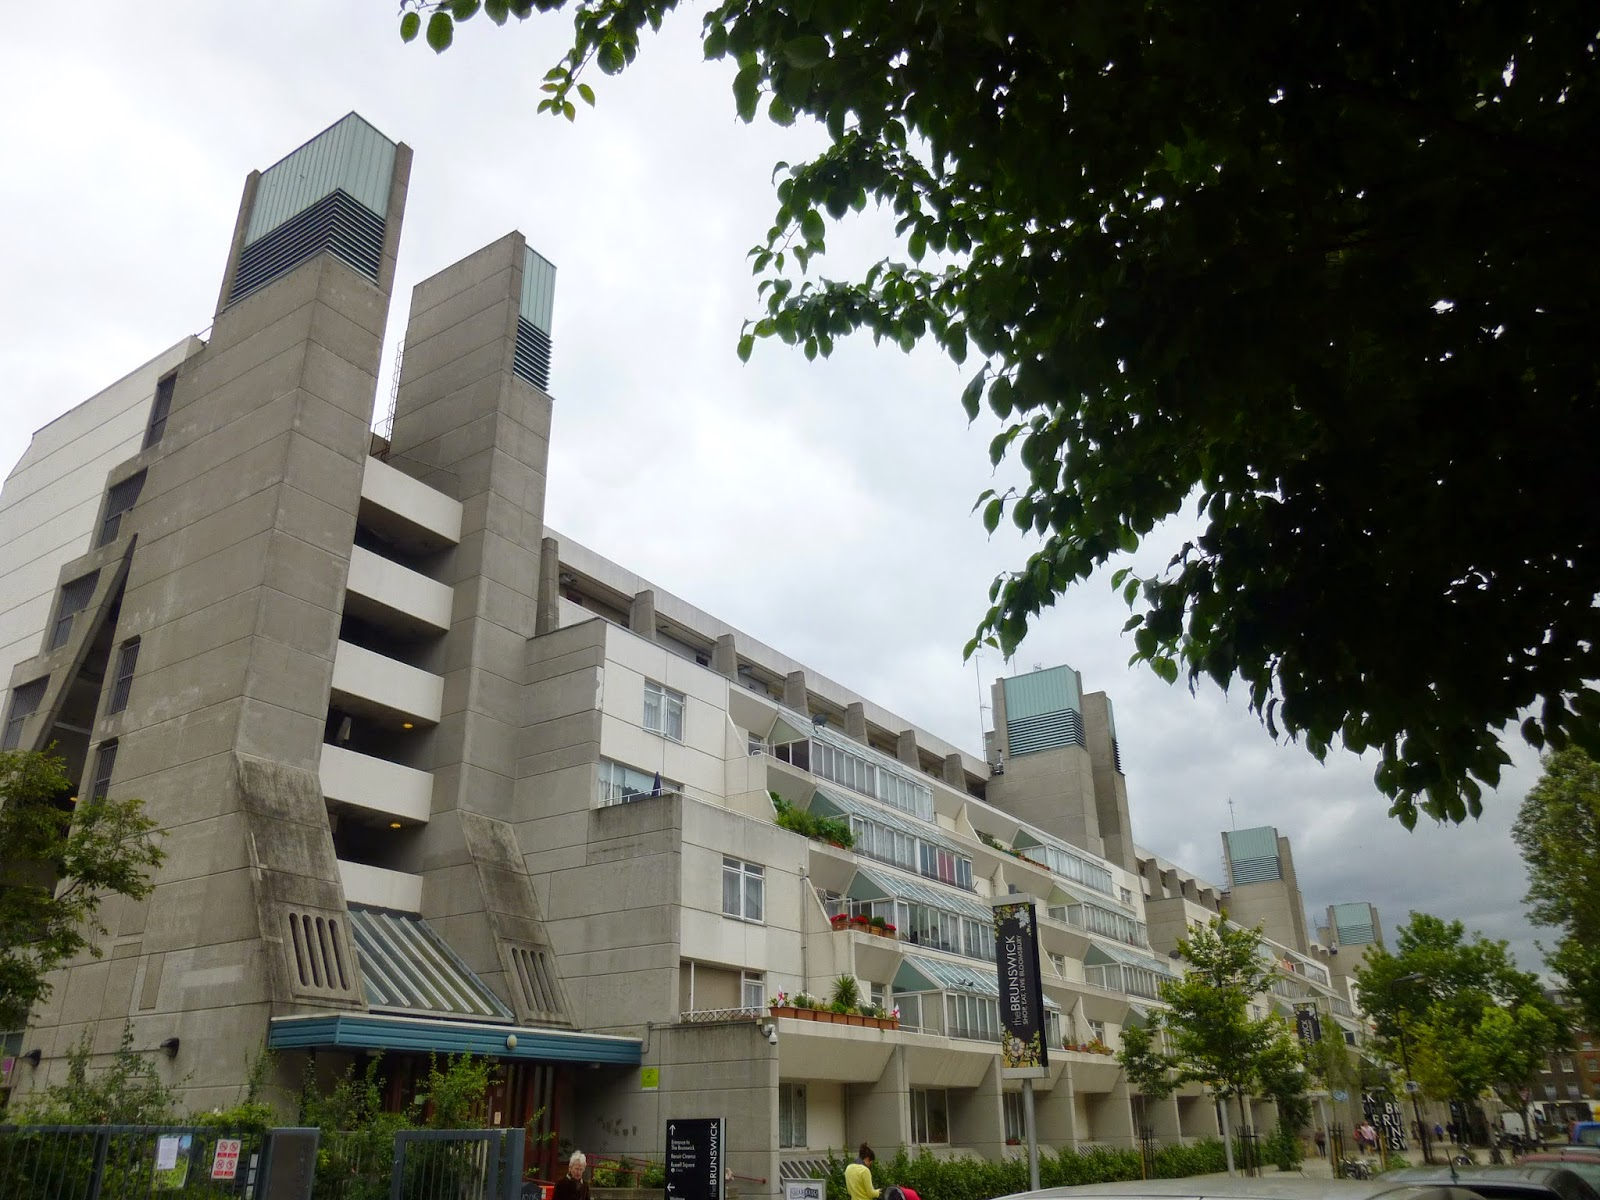 202e9d568f2 The Brunswick centre was built in the late 1960 s as a mixed development  with an open shopping precinct complete with cinema and residential  accommodation ...